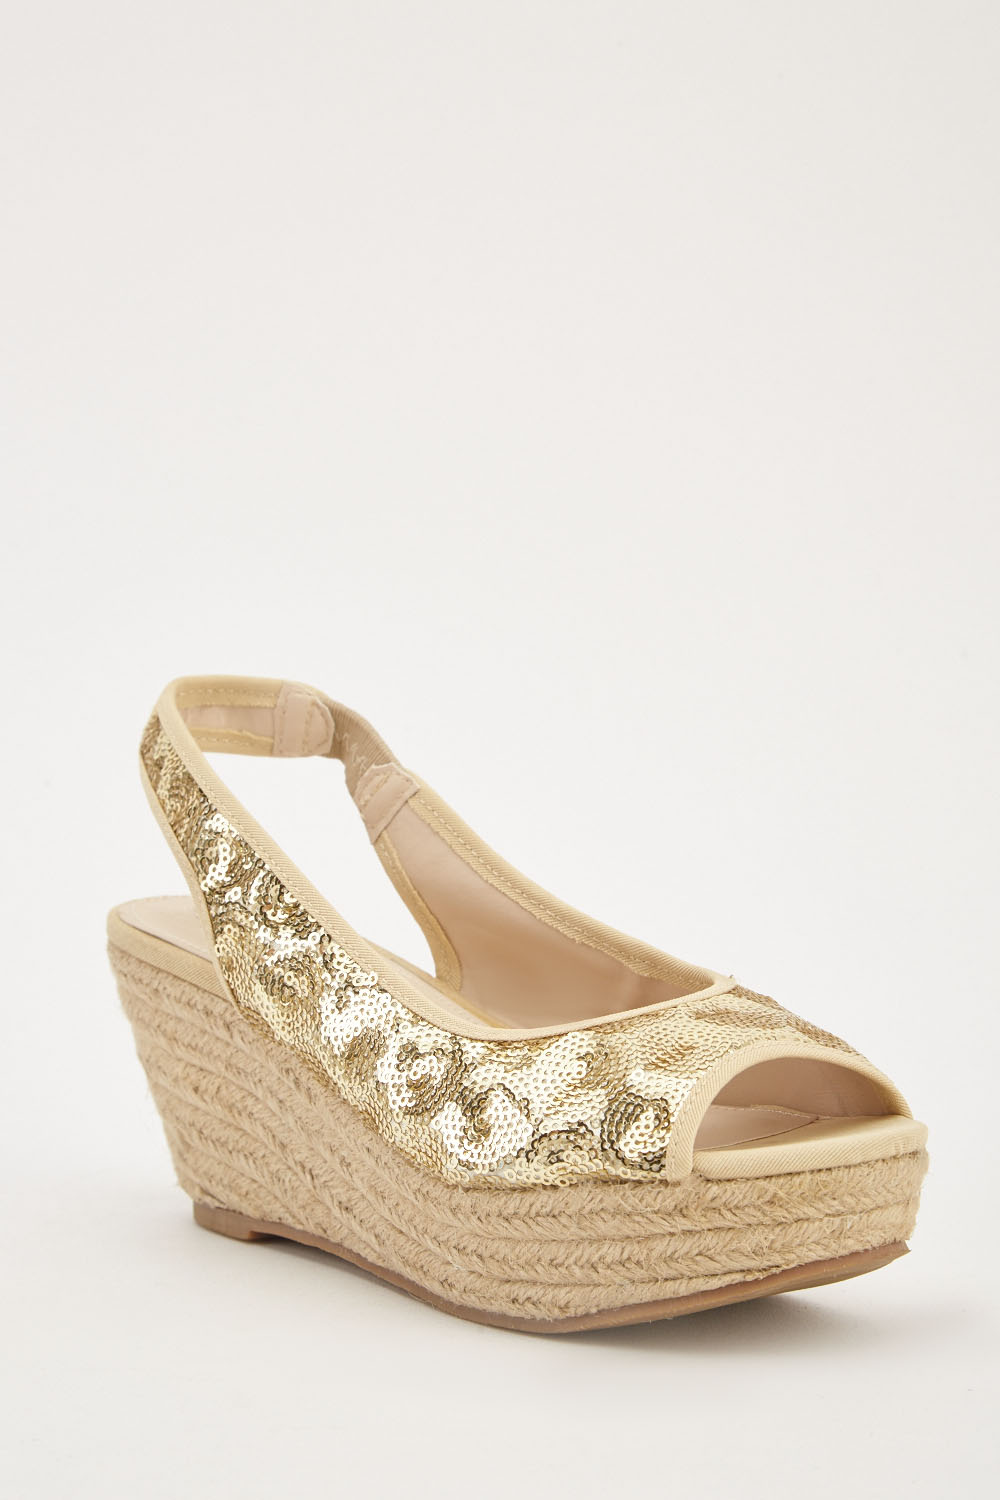 e9879fba821f Sequin Encrusted Open Toe Sandals - Gold - Just £5